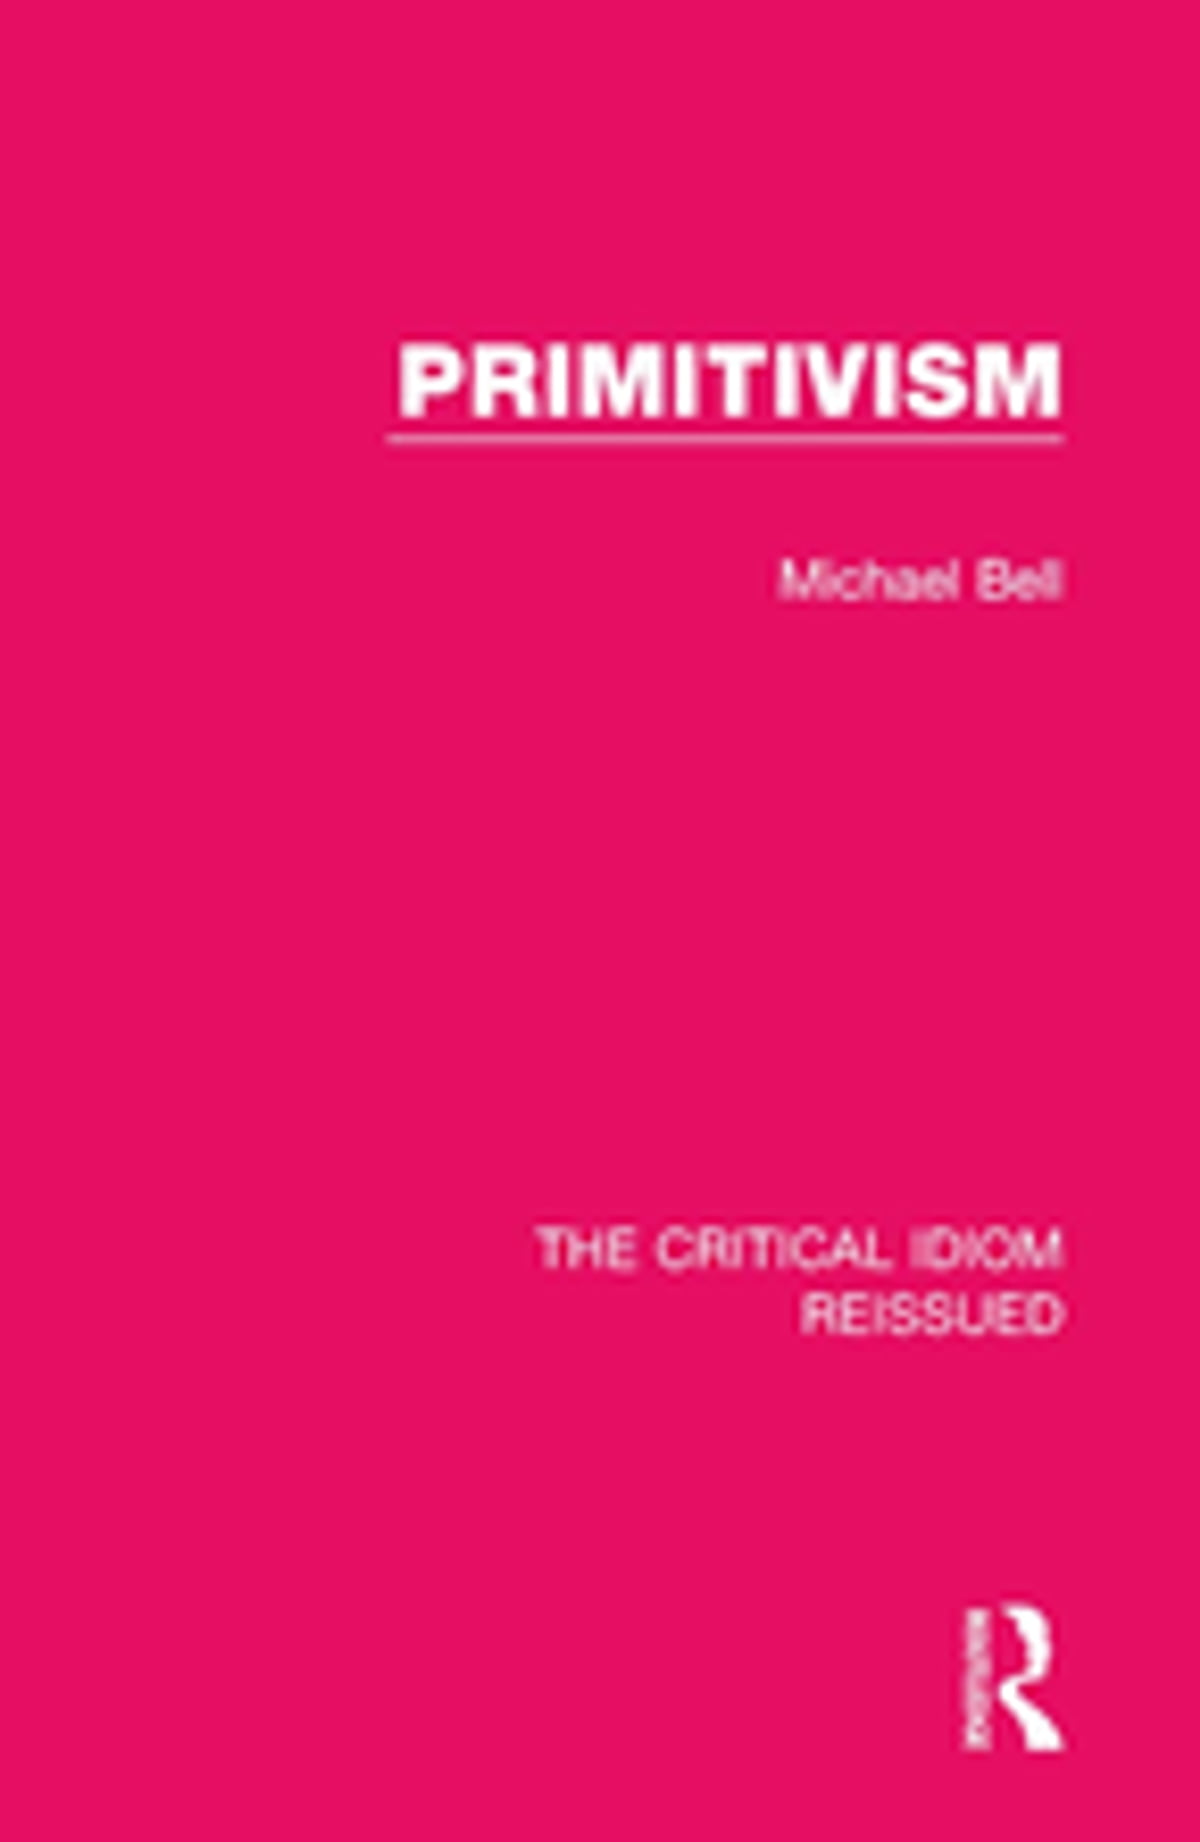 literature modernism and myth bell michael